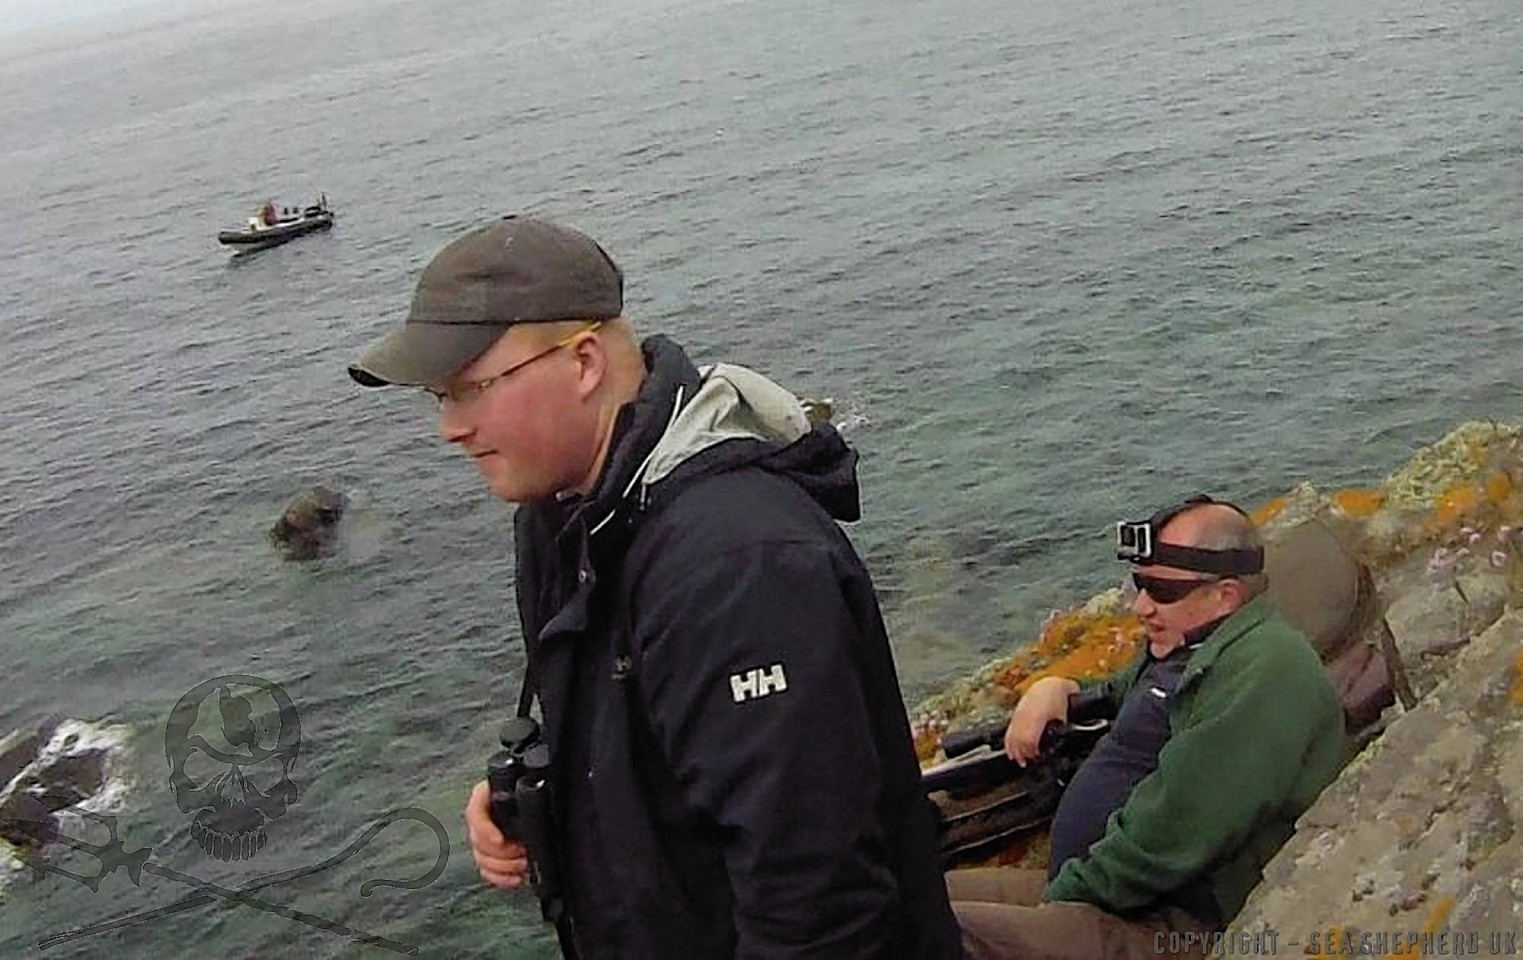 Sea Shepherd campaigners confronted the marksmen at Crovie